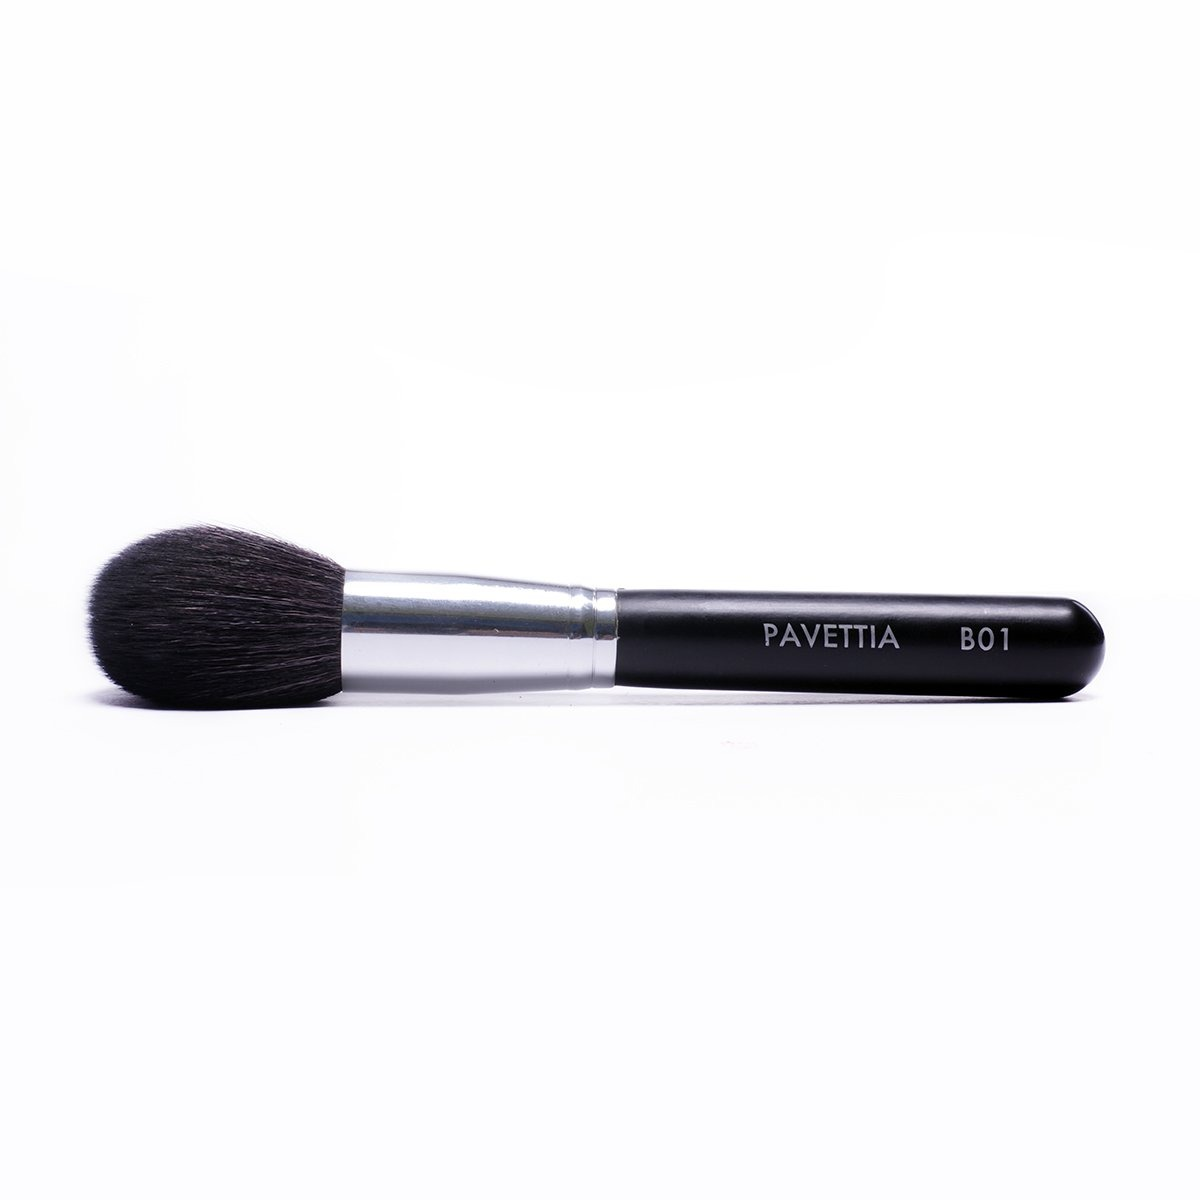 Pavettia Powder Brush